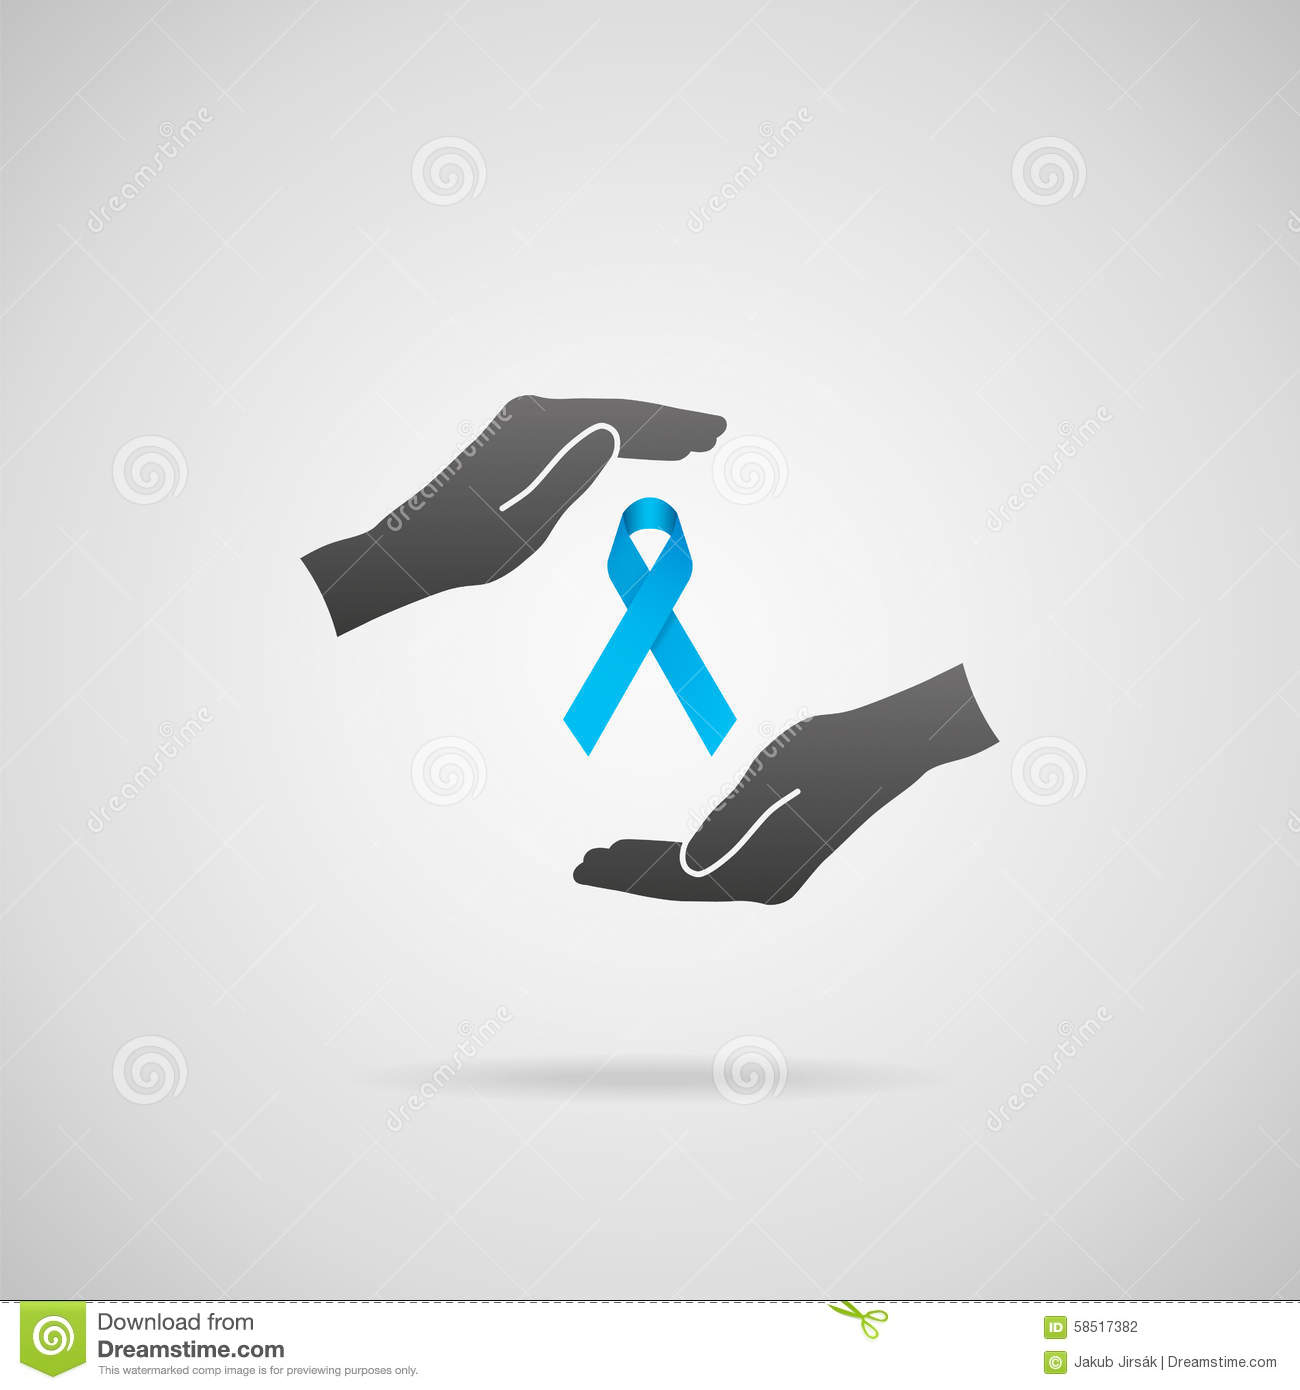 Prostate Cancer Prevention Stock Vector - Image: 58517382